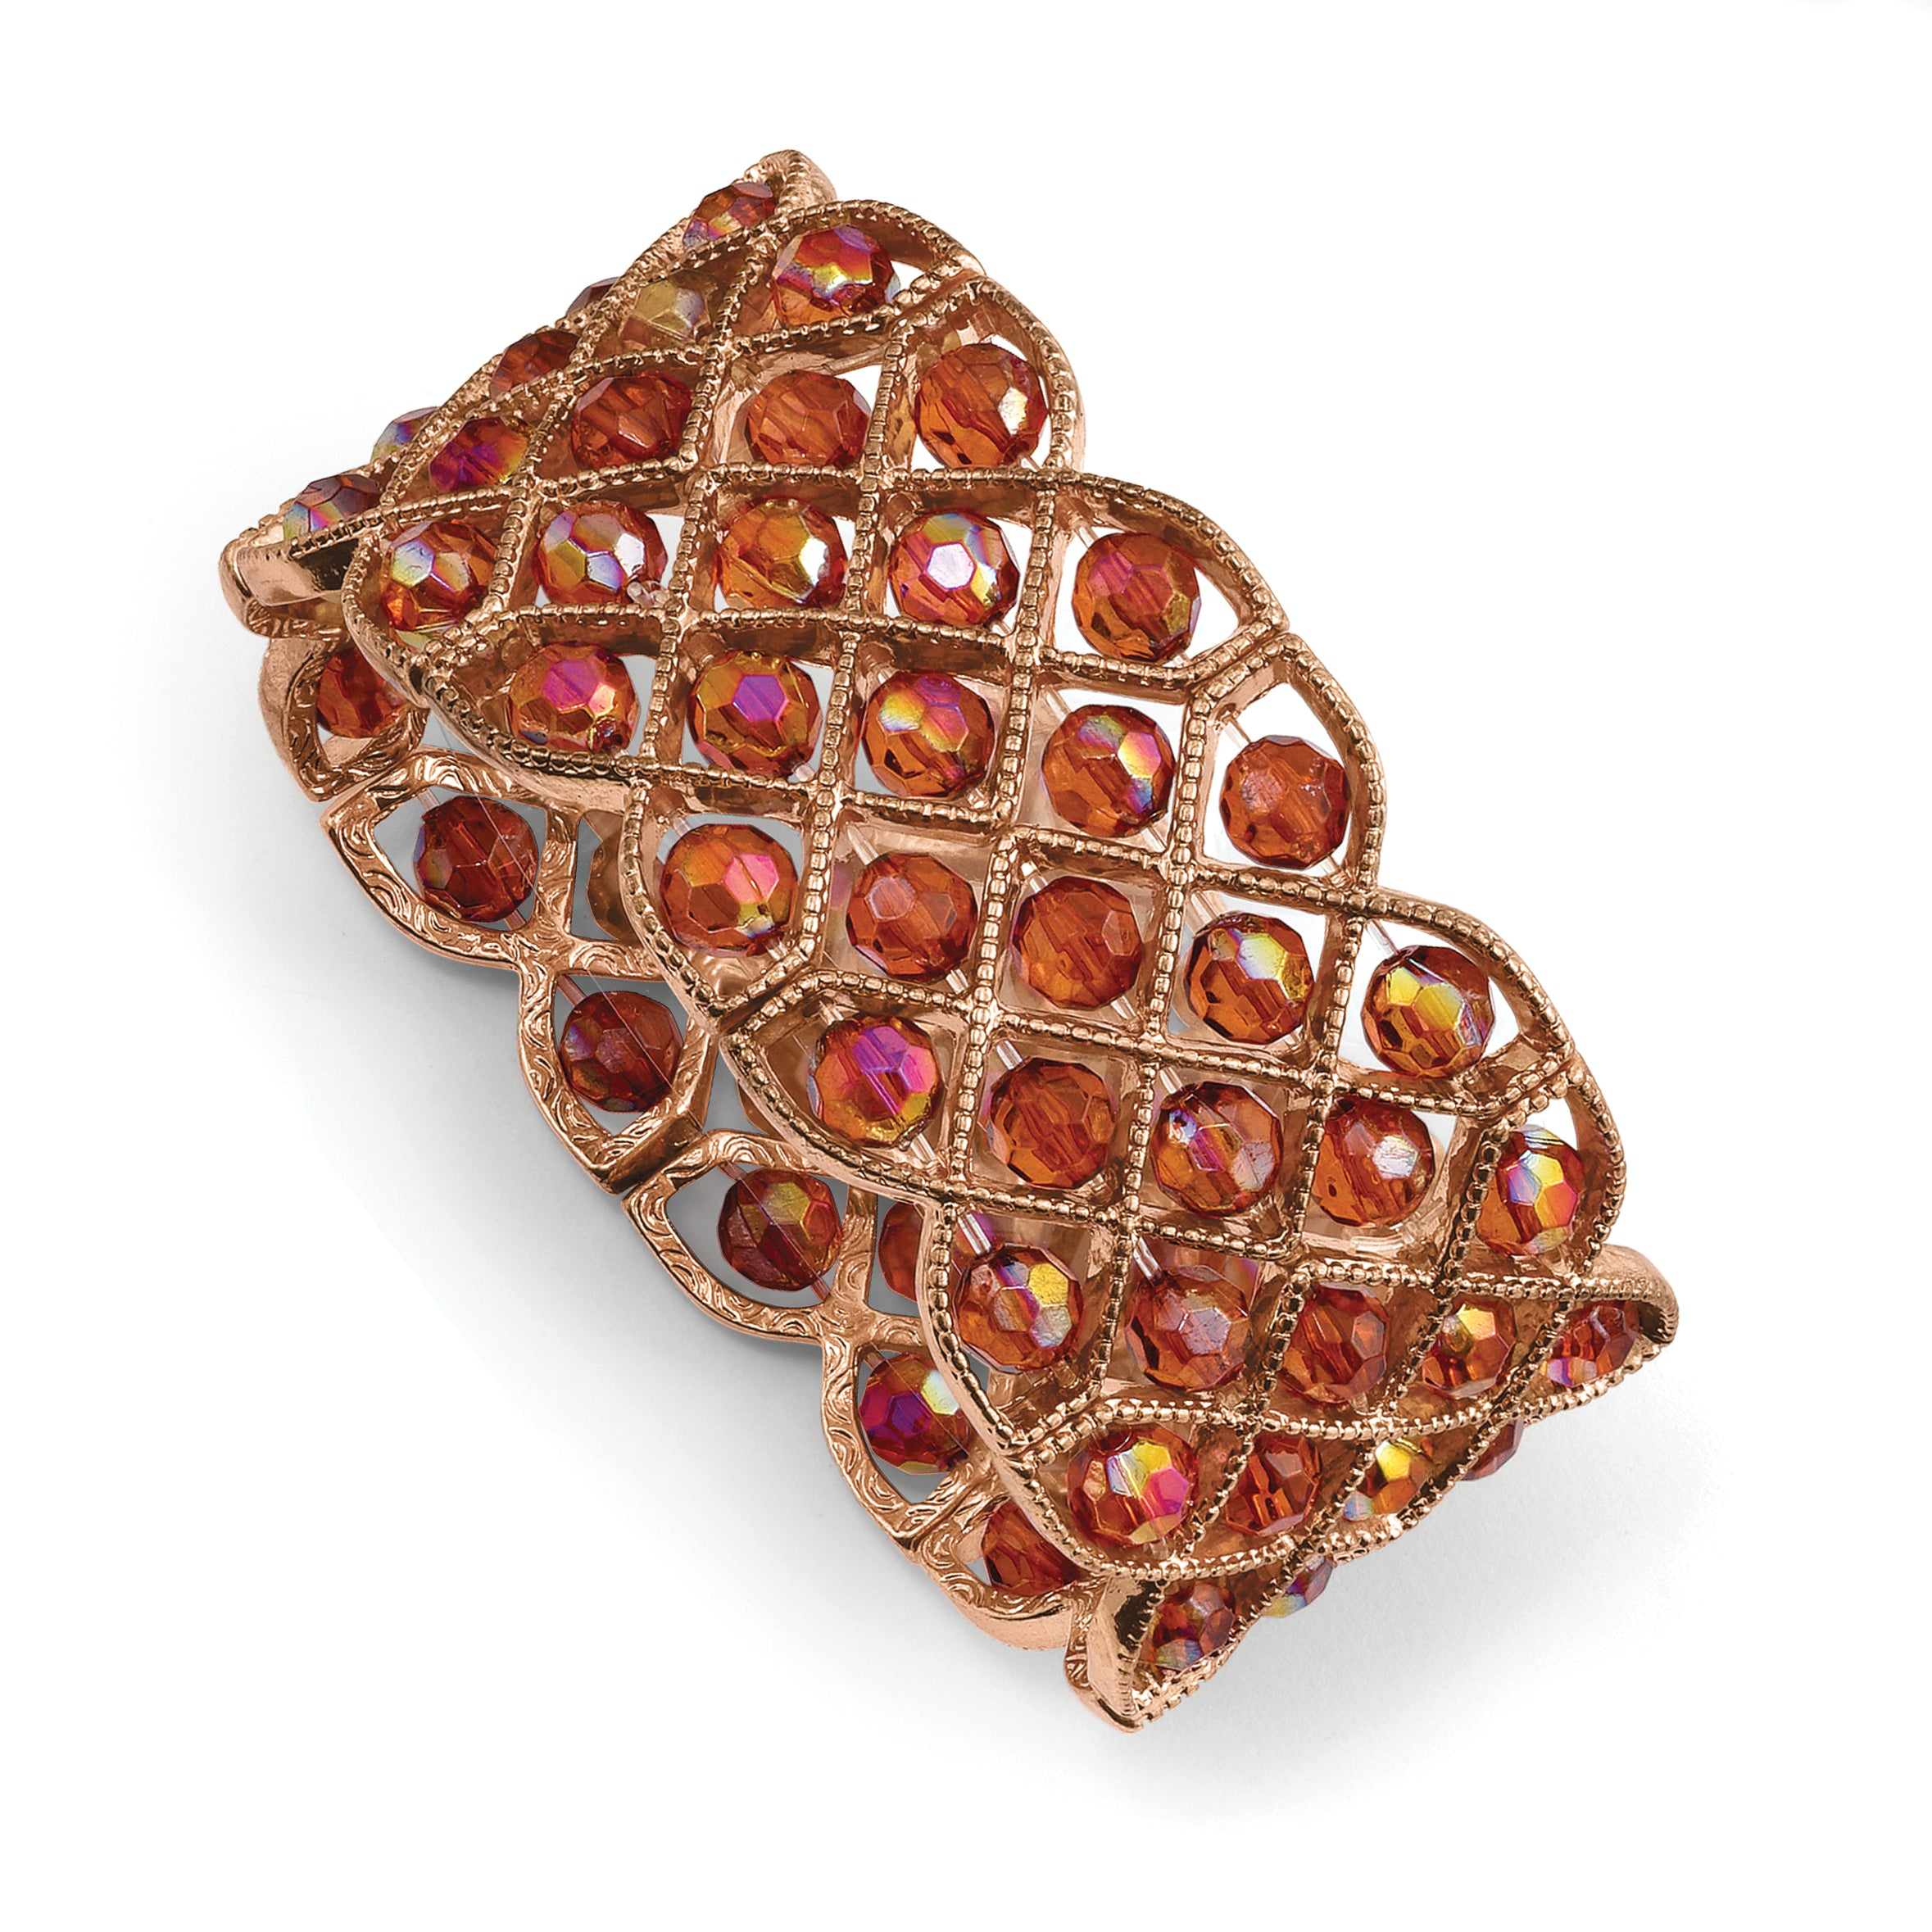 Copper-tone Copper Acrylic Beads Stretch Bracelet BF1074 - shirin-diamonds